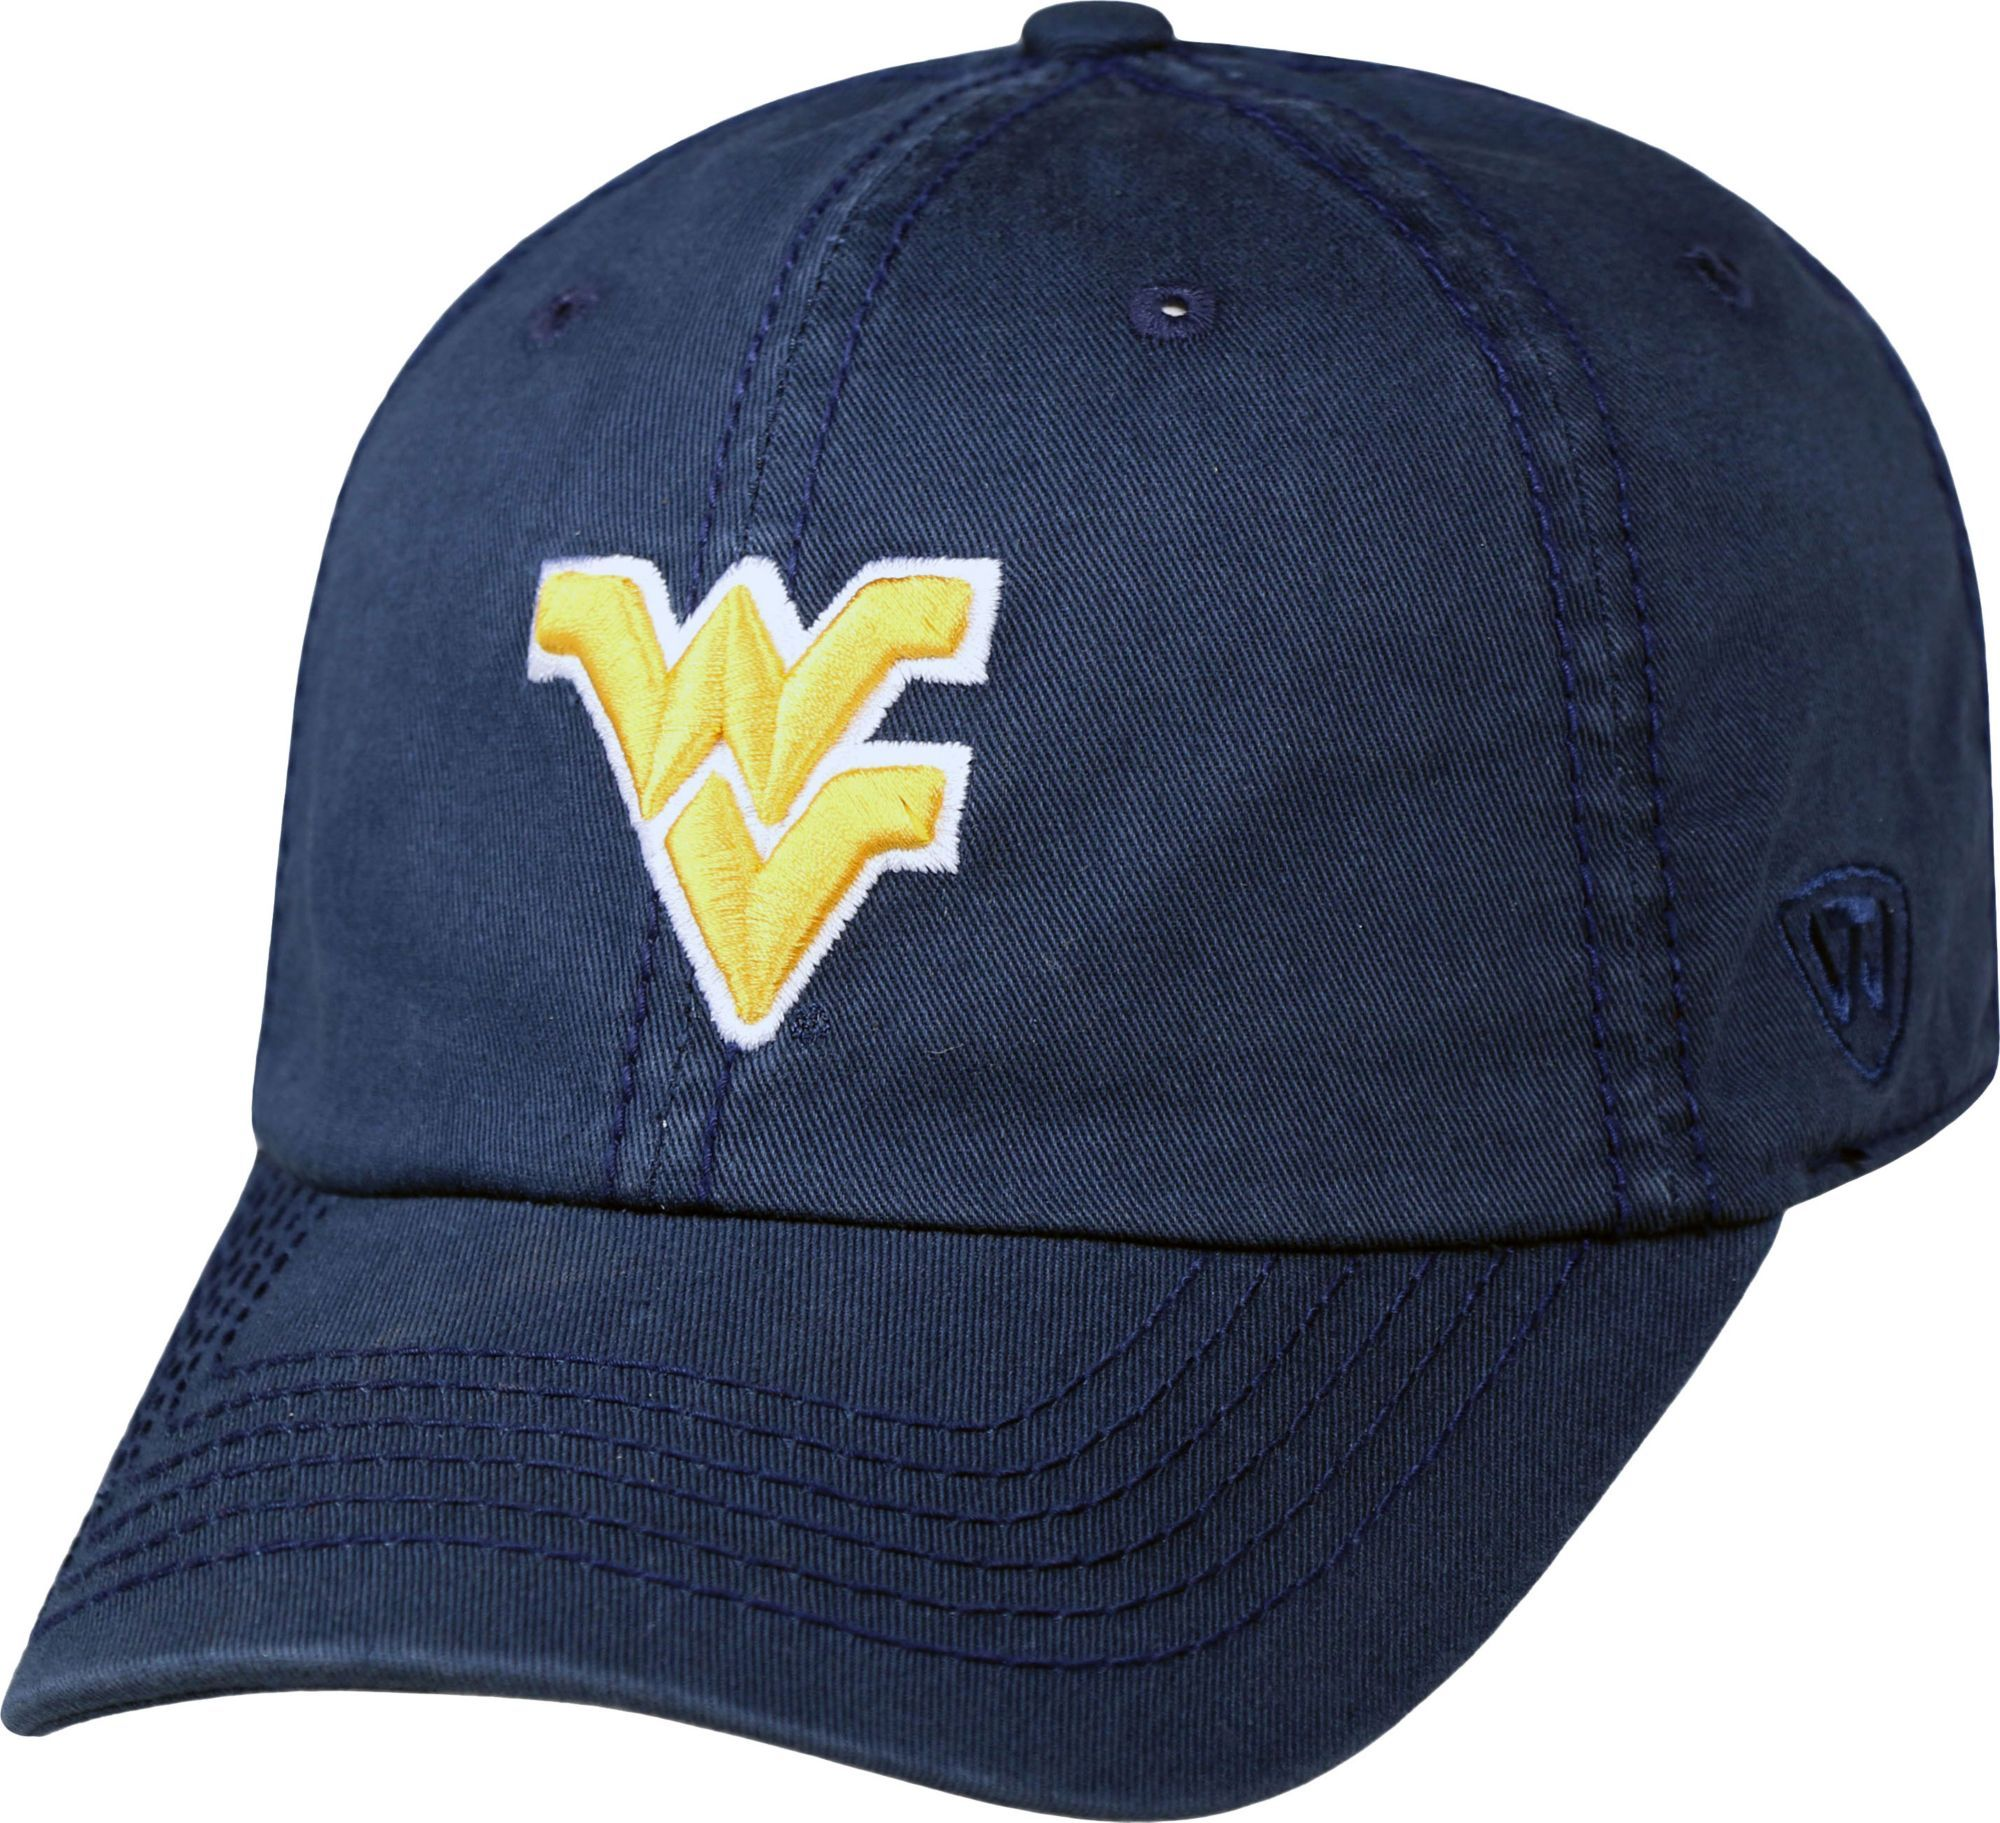 competitive price 99553 7e50f Top of the World Men s West Virginia Mountaineers Blue Crew Adjustable Hat,  Team